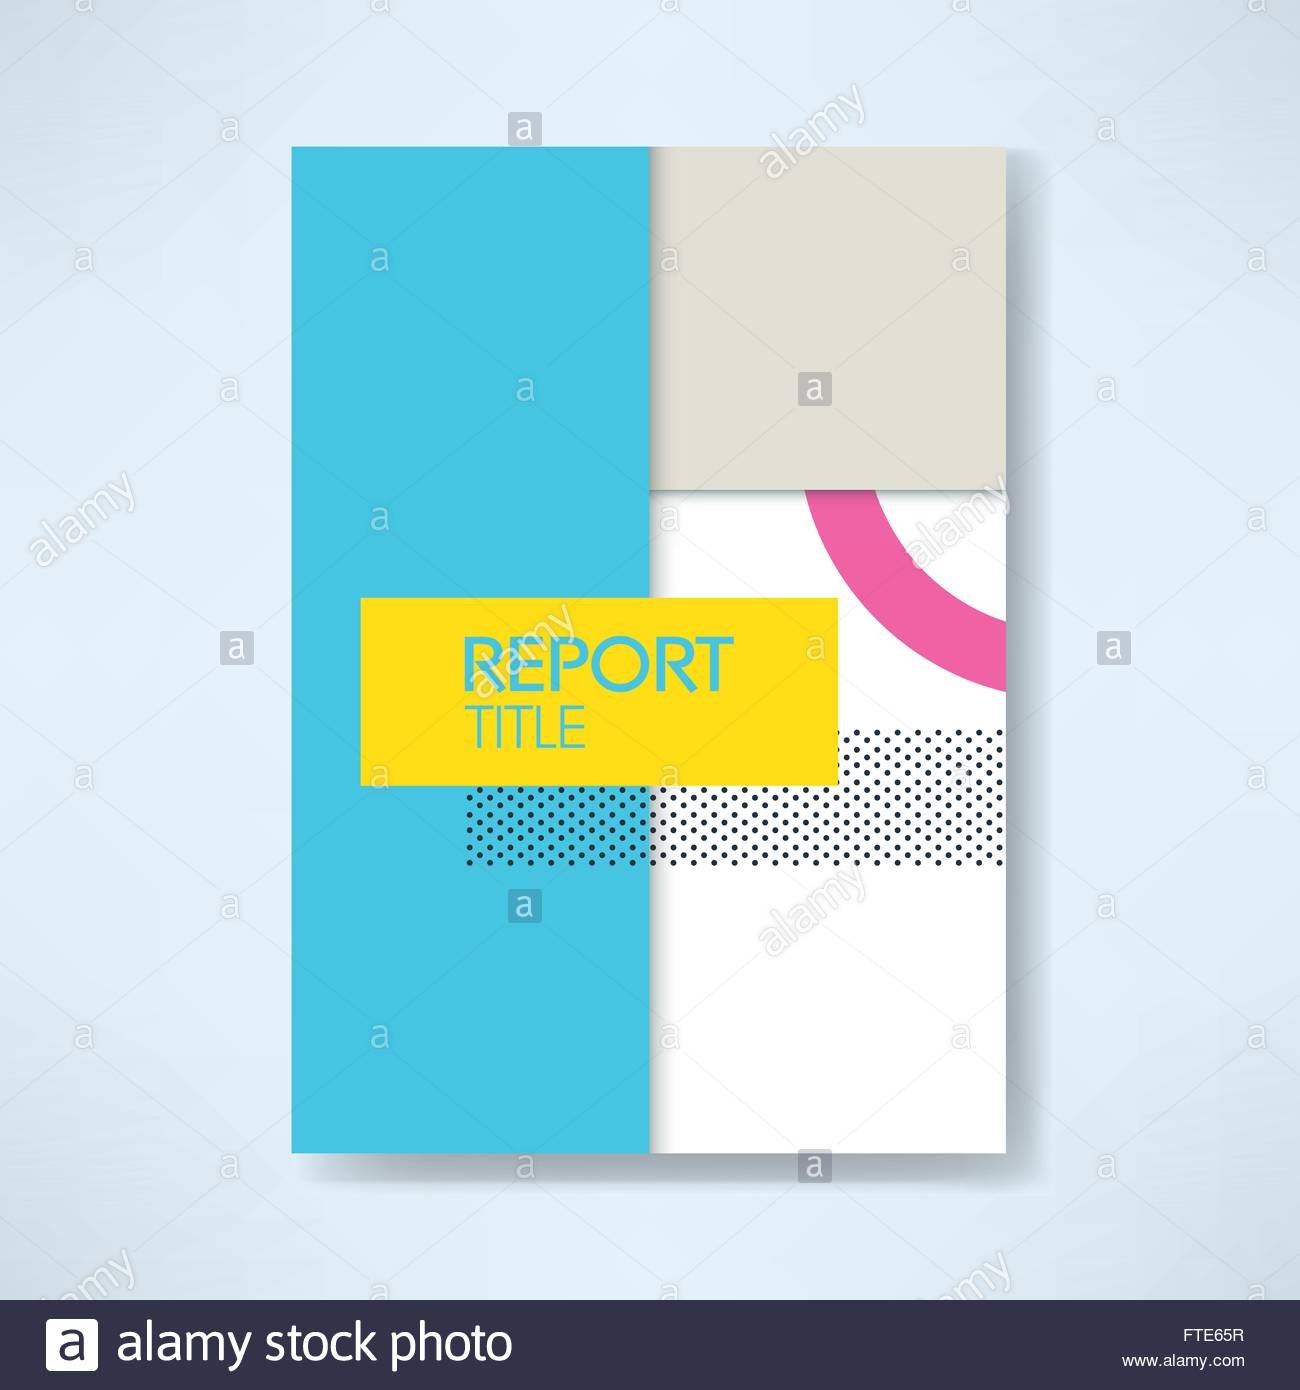 report cover template in modern material design style with geometric